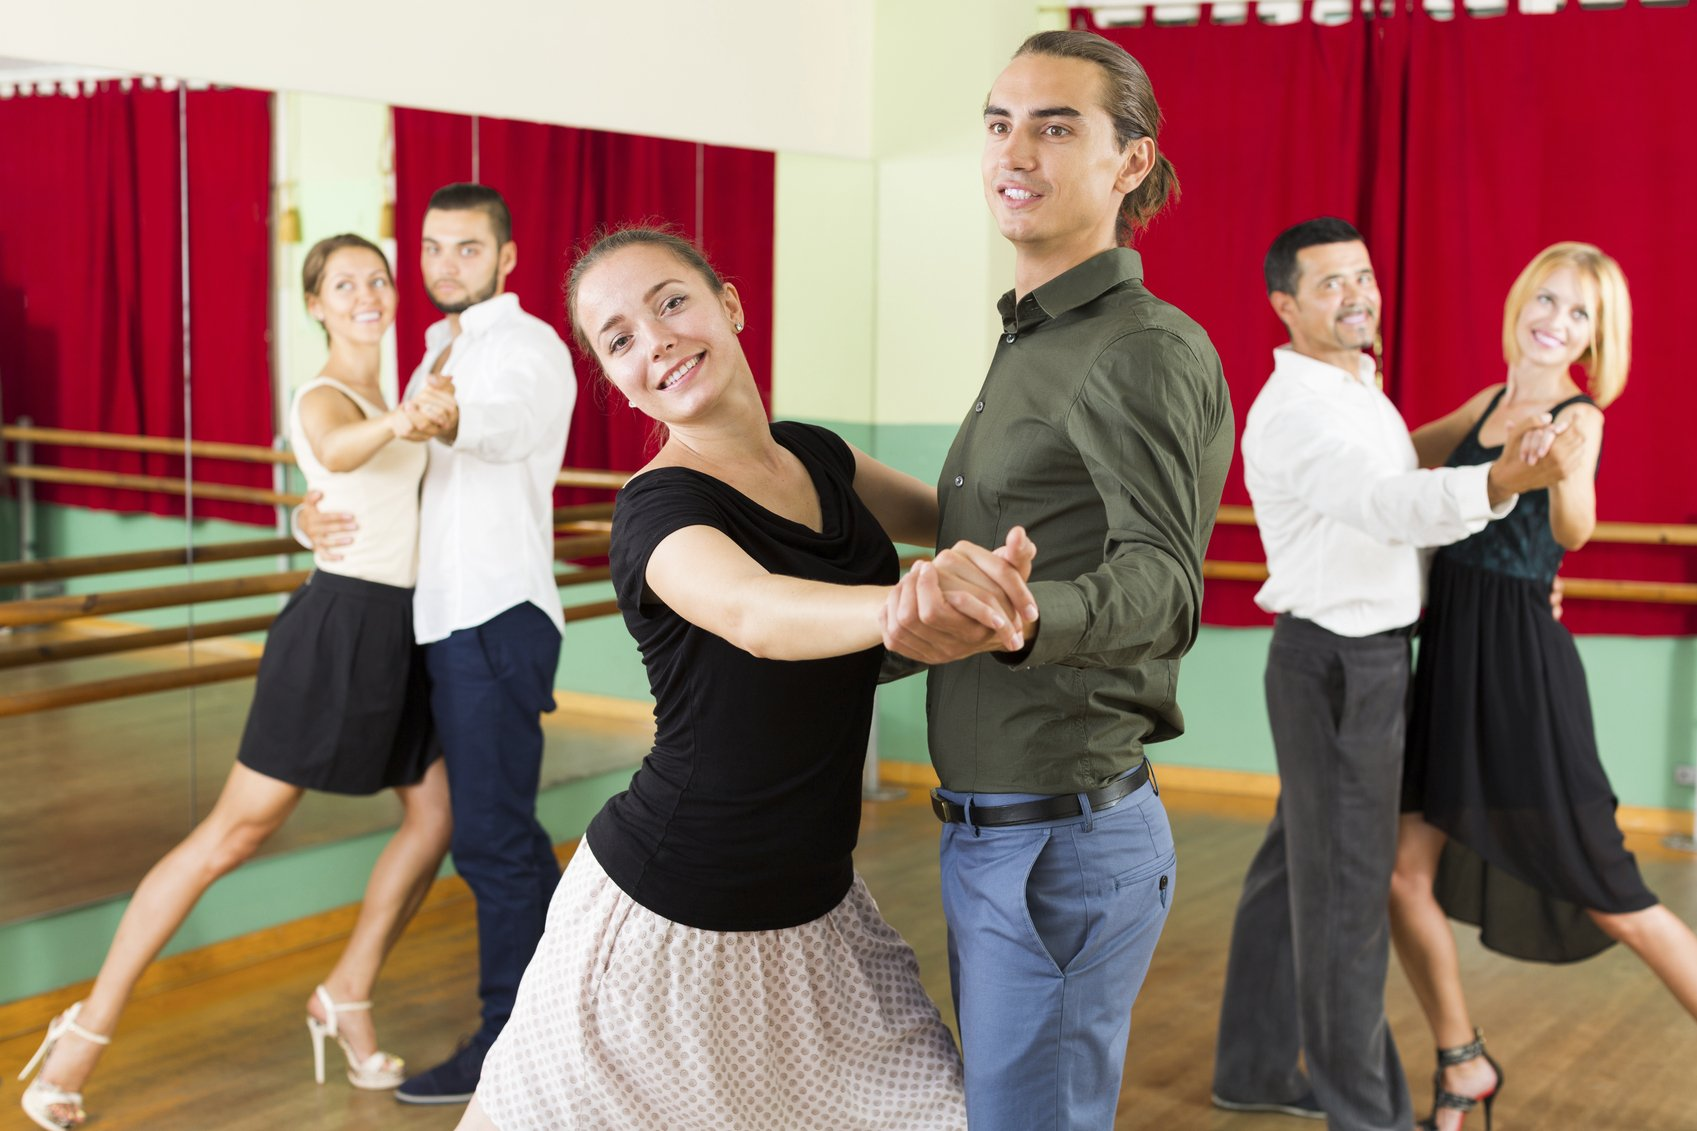 Couples dance lessons are a great way to hone your skills, but are private or group lessons right for you?